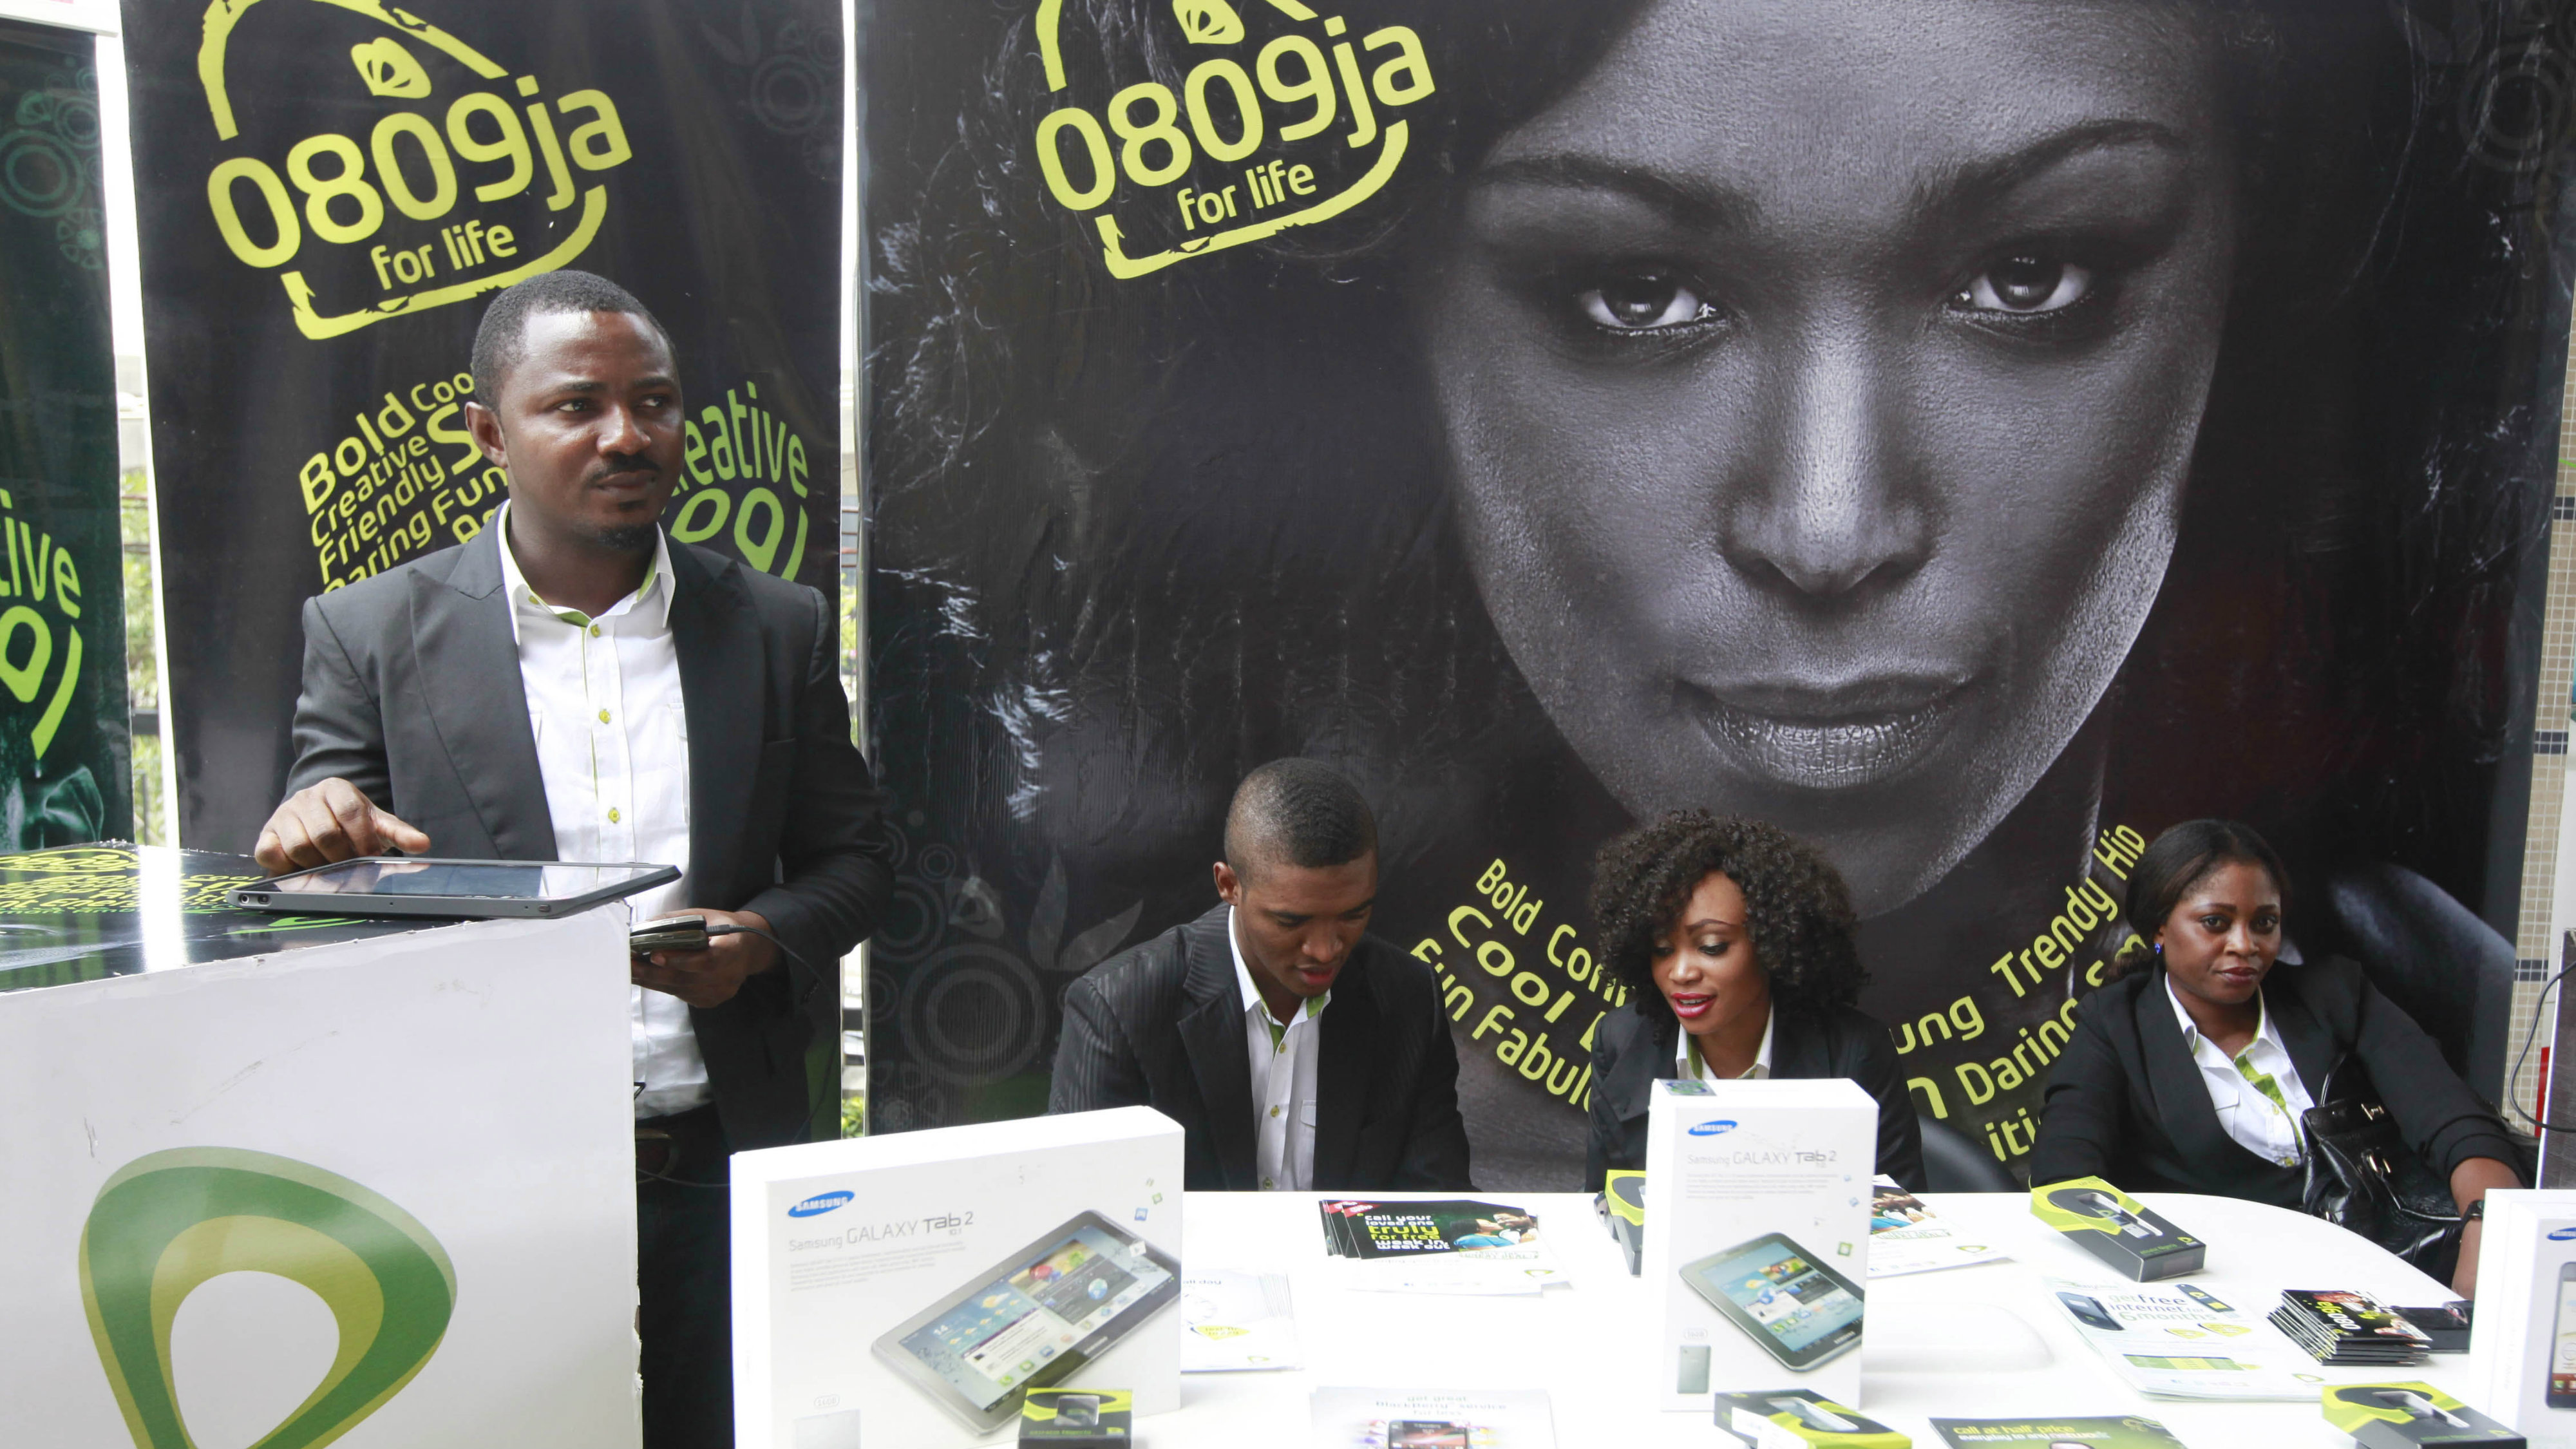 In this Monday, April. 22, 2013 file photo, Staff of Etisalat Nigeria wait for customers during the launch of mobile number portability in Lagos, Nigeria. Nigeria is set to overtake South Africa as the biggest economy in Africa with a long-overdue recount of its GDP that will give it continental bragging rights but do little for its 112 million people scrabbling to survive in desperate poverty. That's cause for reflection in longtime rival South Africa, the only African member of the G20, on the strength of its position as the continent's economic powerhouse. Finance Minister Ngozi Ikonjo-Iweala is to announce new GDP figures on Sunday, April. 6, 2014 to include previously uncounted industries like telecommunications and IT, banking and insurance, music and airlines, and the burgeoning online retail outlets and Nollywood films that didn't exist when the last count was made in 1990. Then, there were 300,000 landlines. Today, Nigeria has 100 million cell phone users.